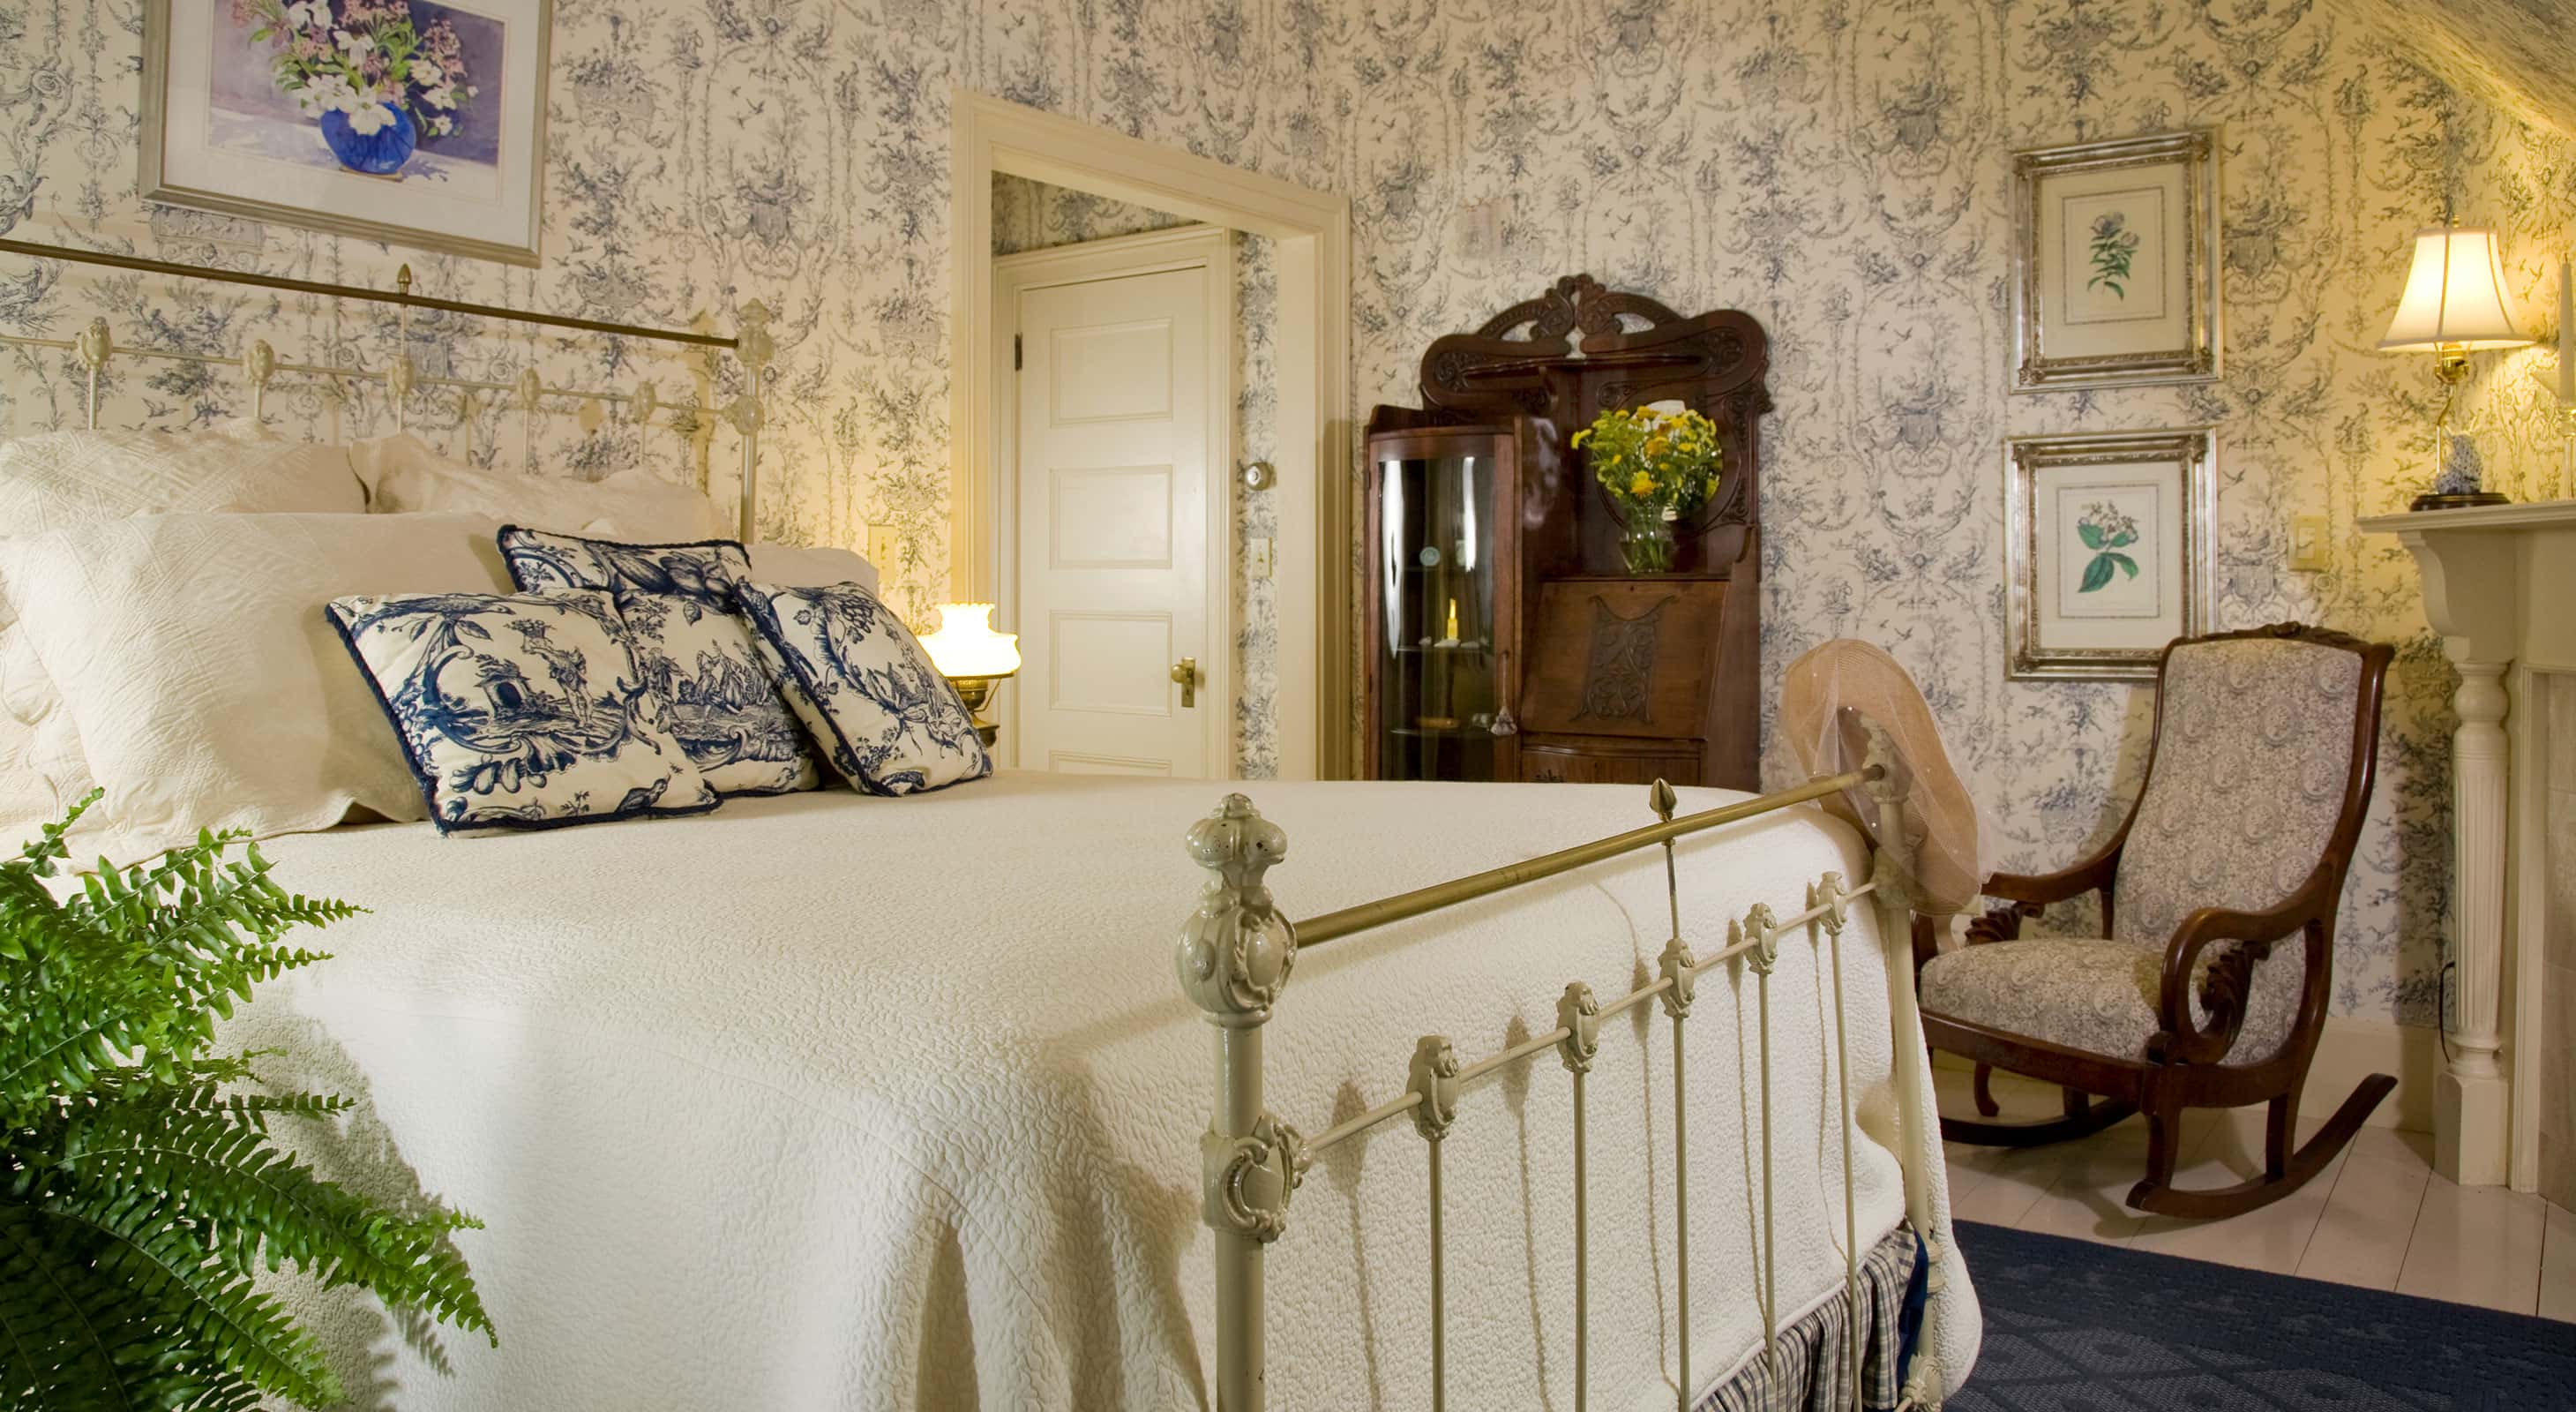 Antique-style metal bed across from ornate wooden stand in Room 7